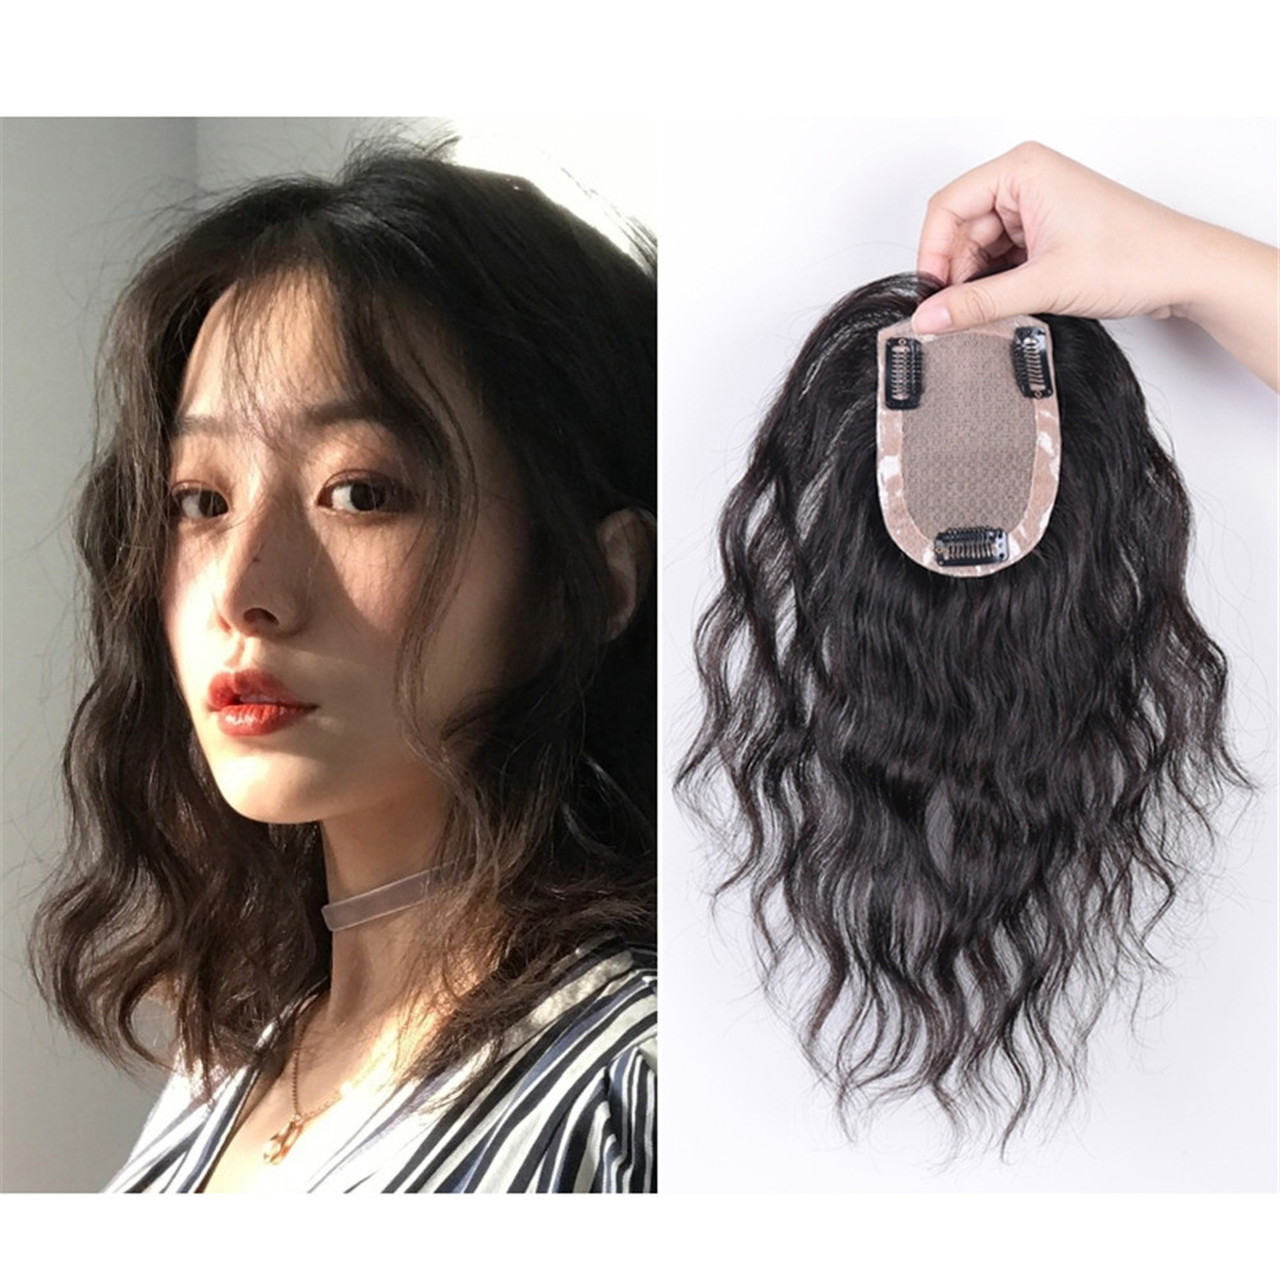 f70ea6043 Hand Needle Curly Human Hair Replacement For Women Topper Hairpieces System  8*12CM